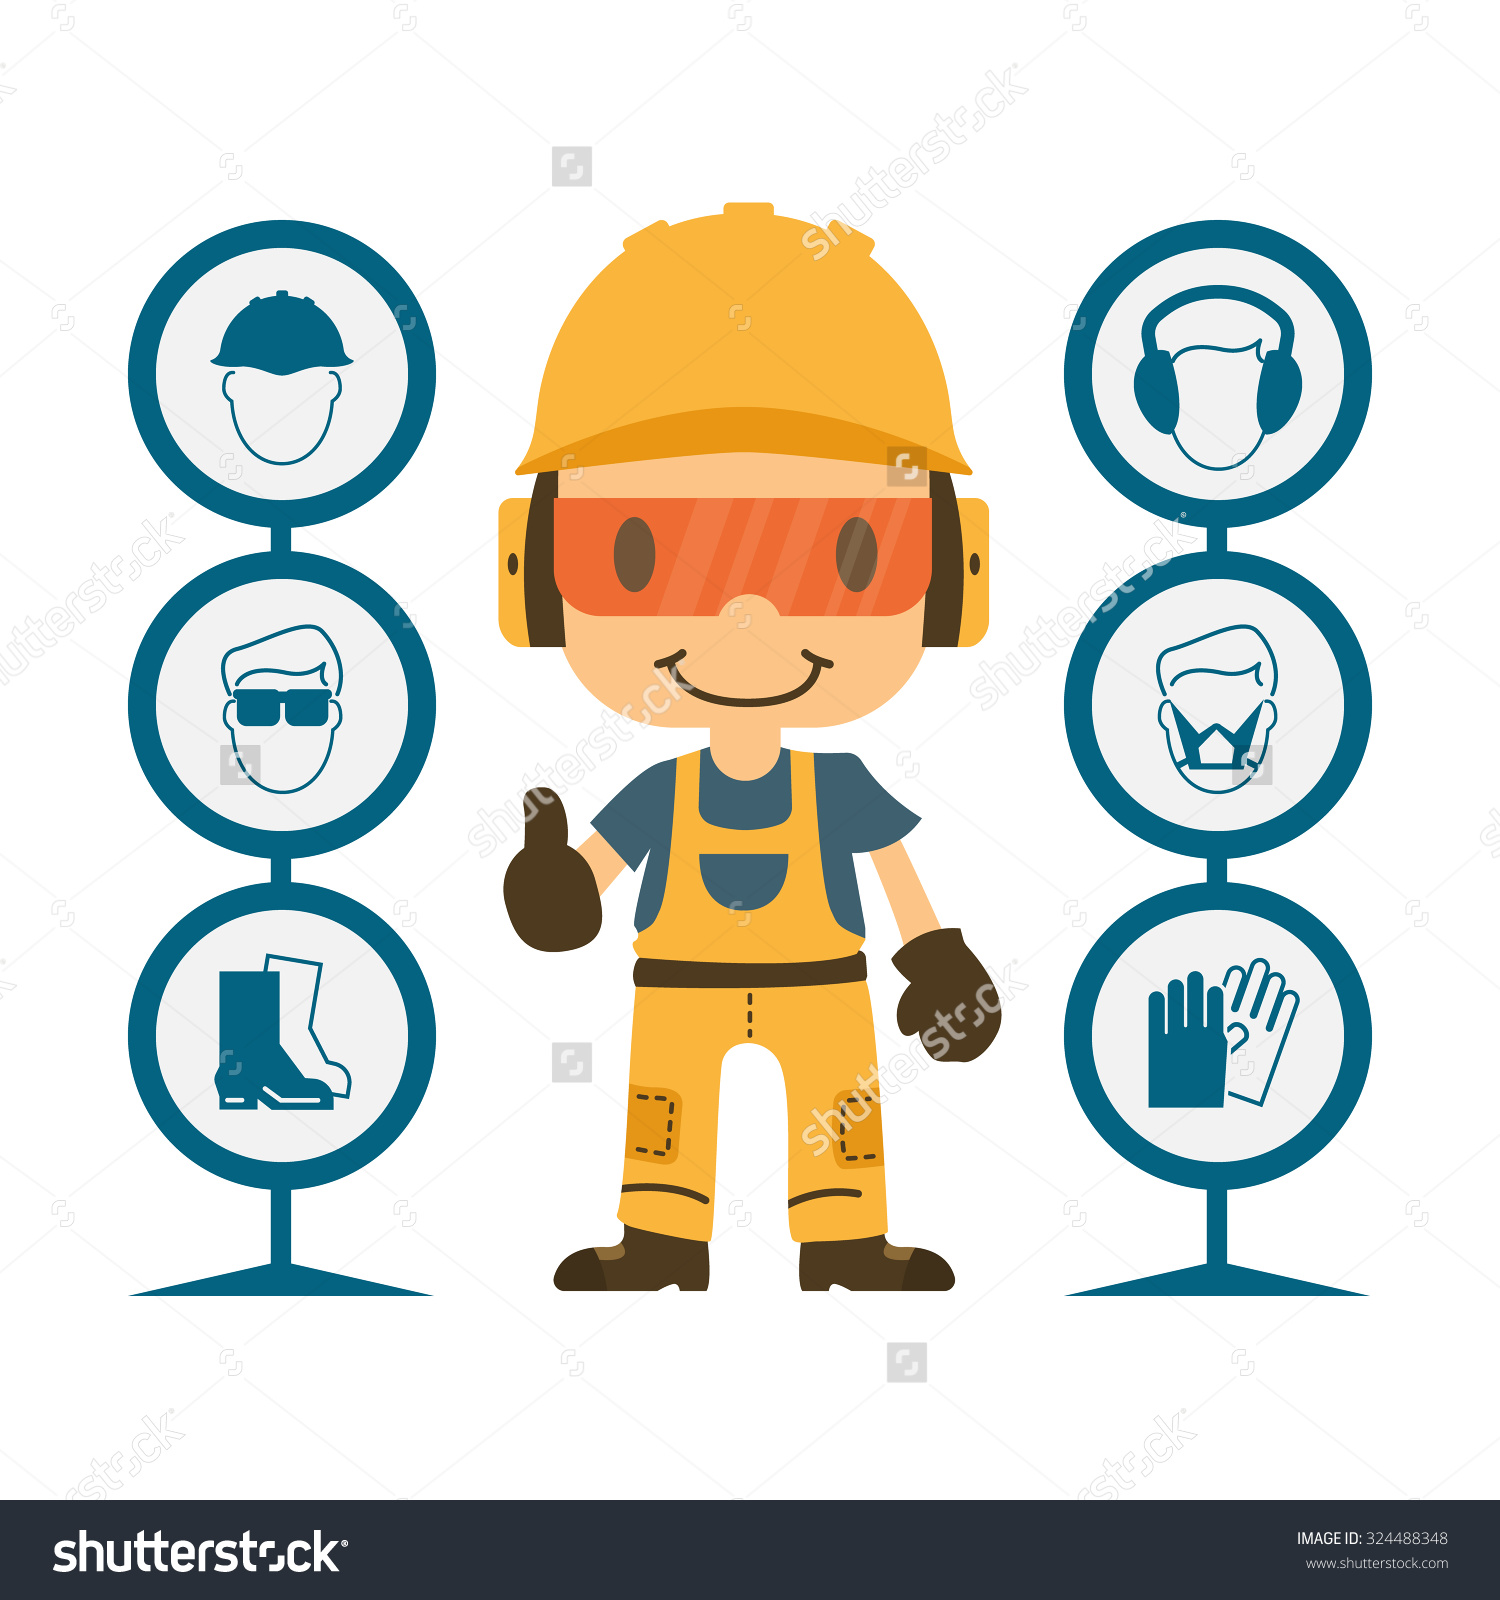 Barrier clipart industrial safety To a lightbox Ppe Cliparts